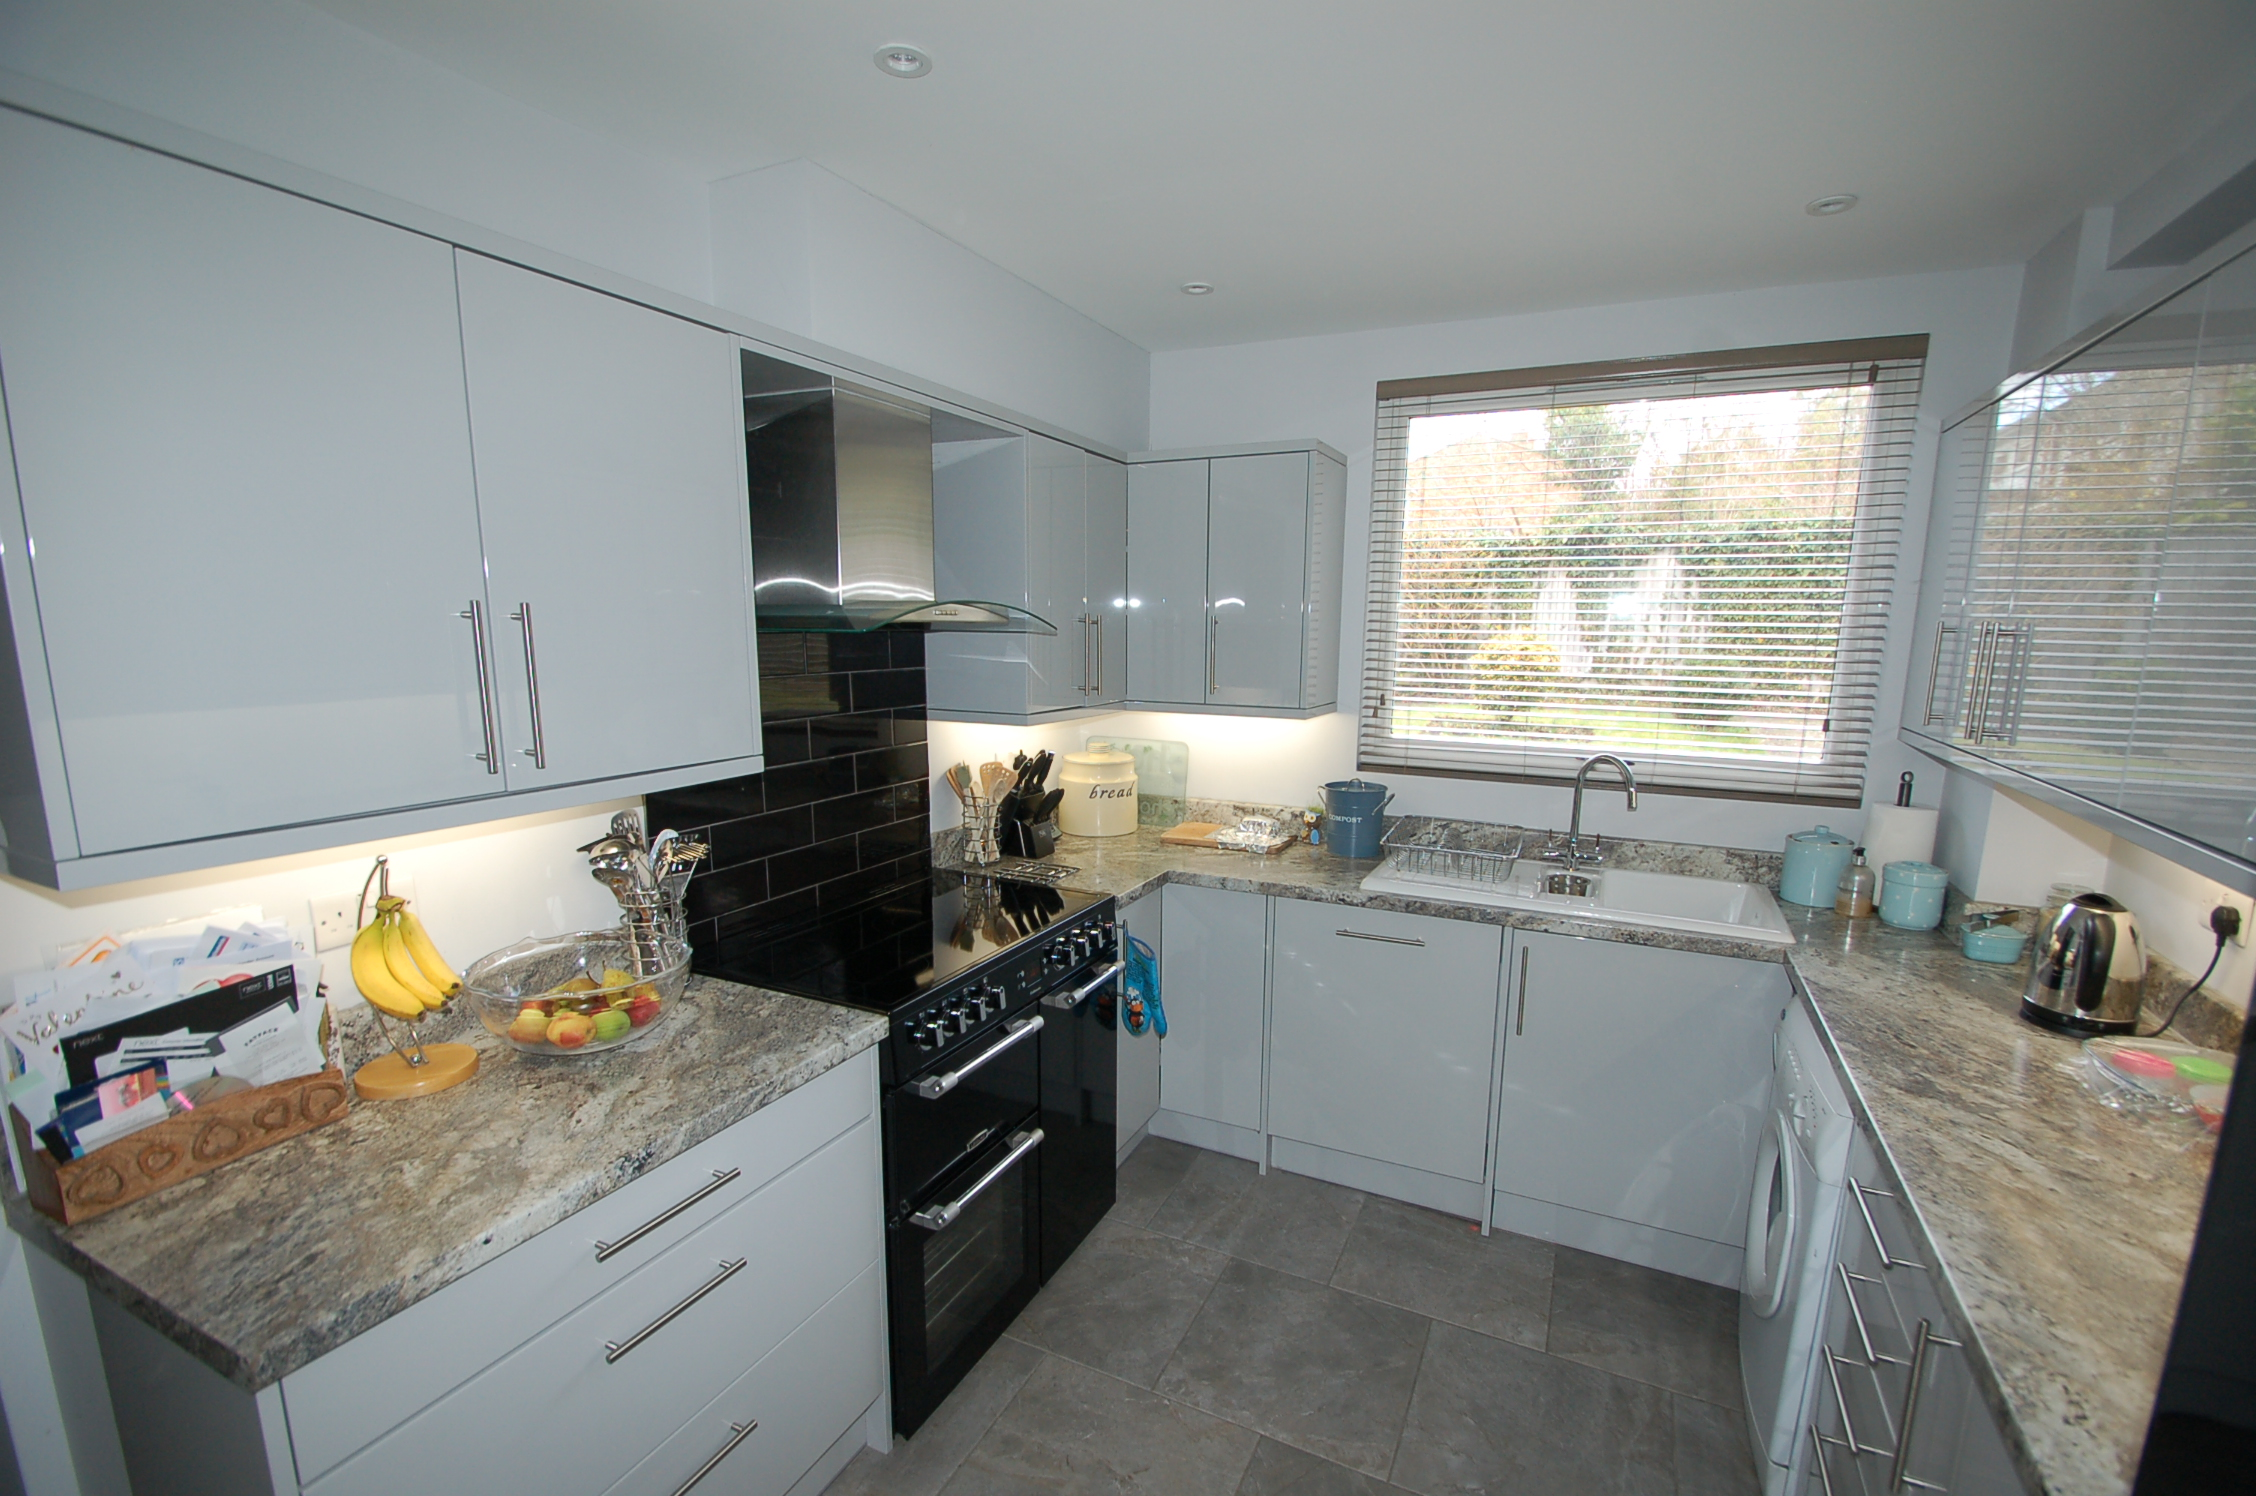 Lacquered J profile doors on white cabinets with laminate worktops